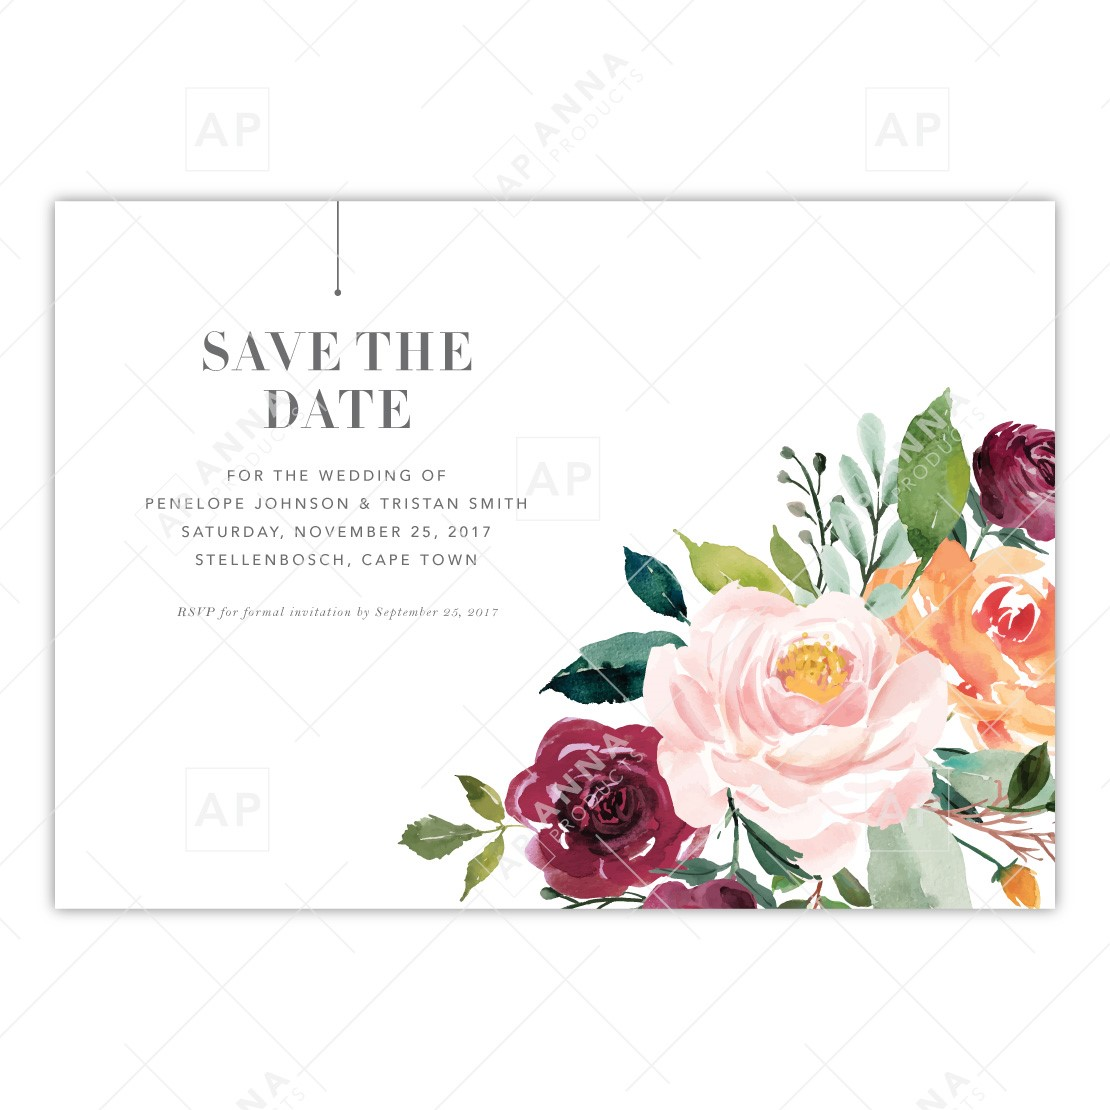 save the date burgundy floral anna products